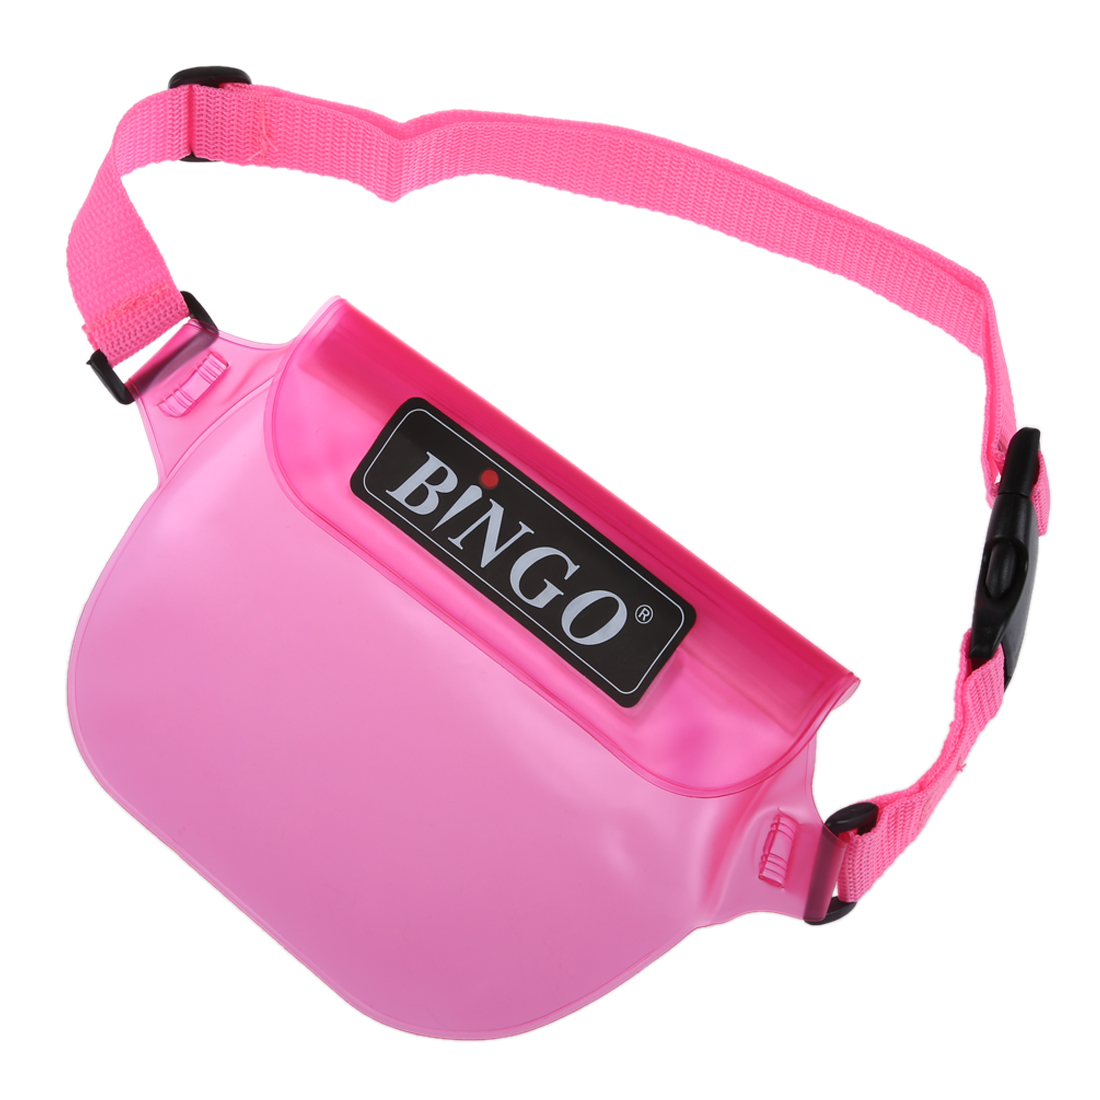 Bingo Waterproof Bag Rafting Waist Packs for Phone Wallet Purse Compact Camera(pink)